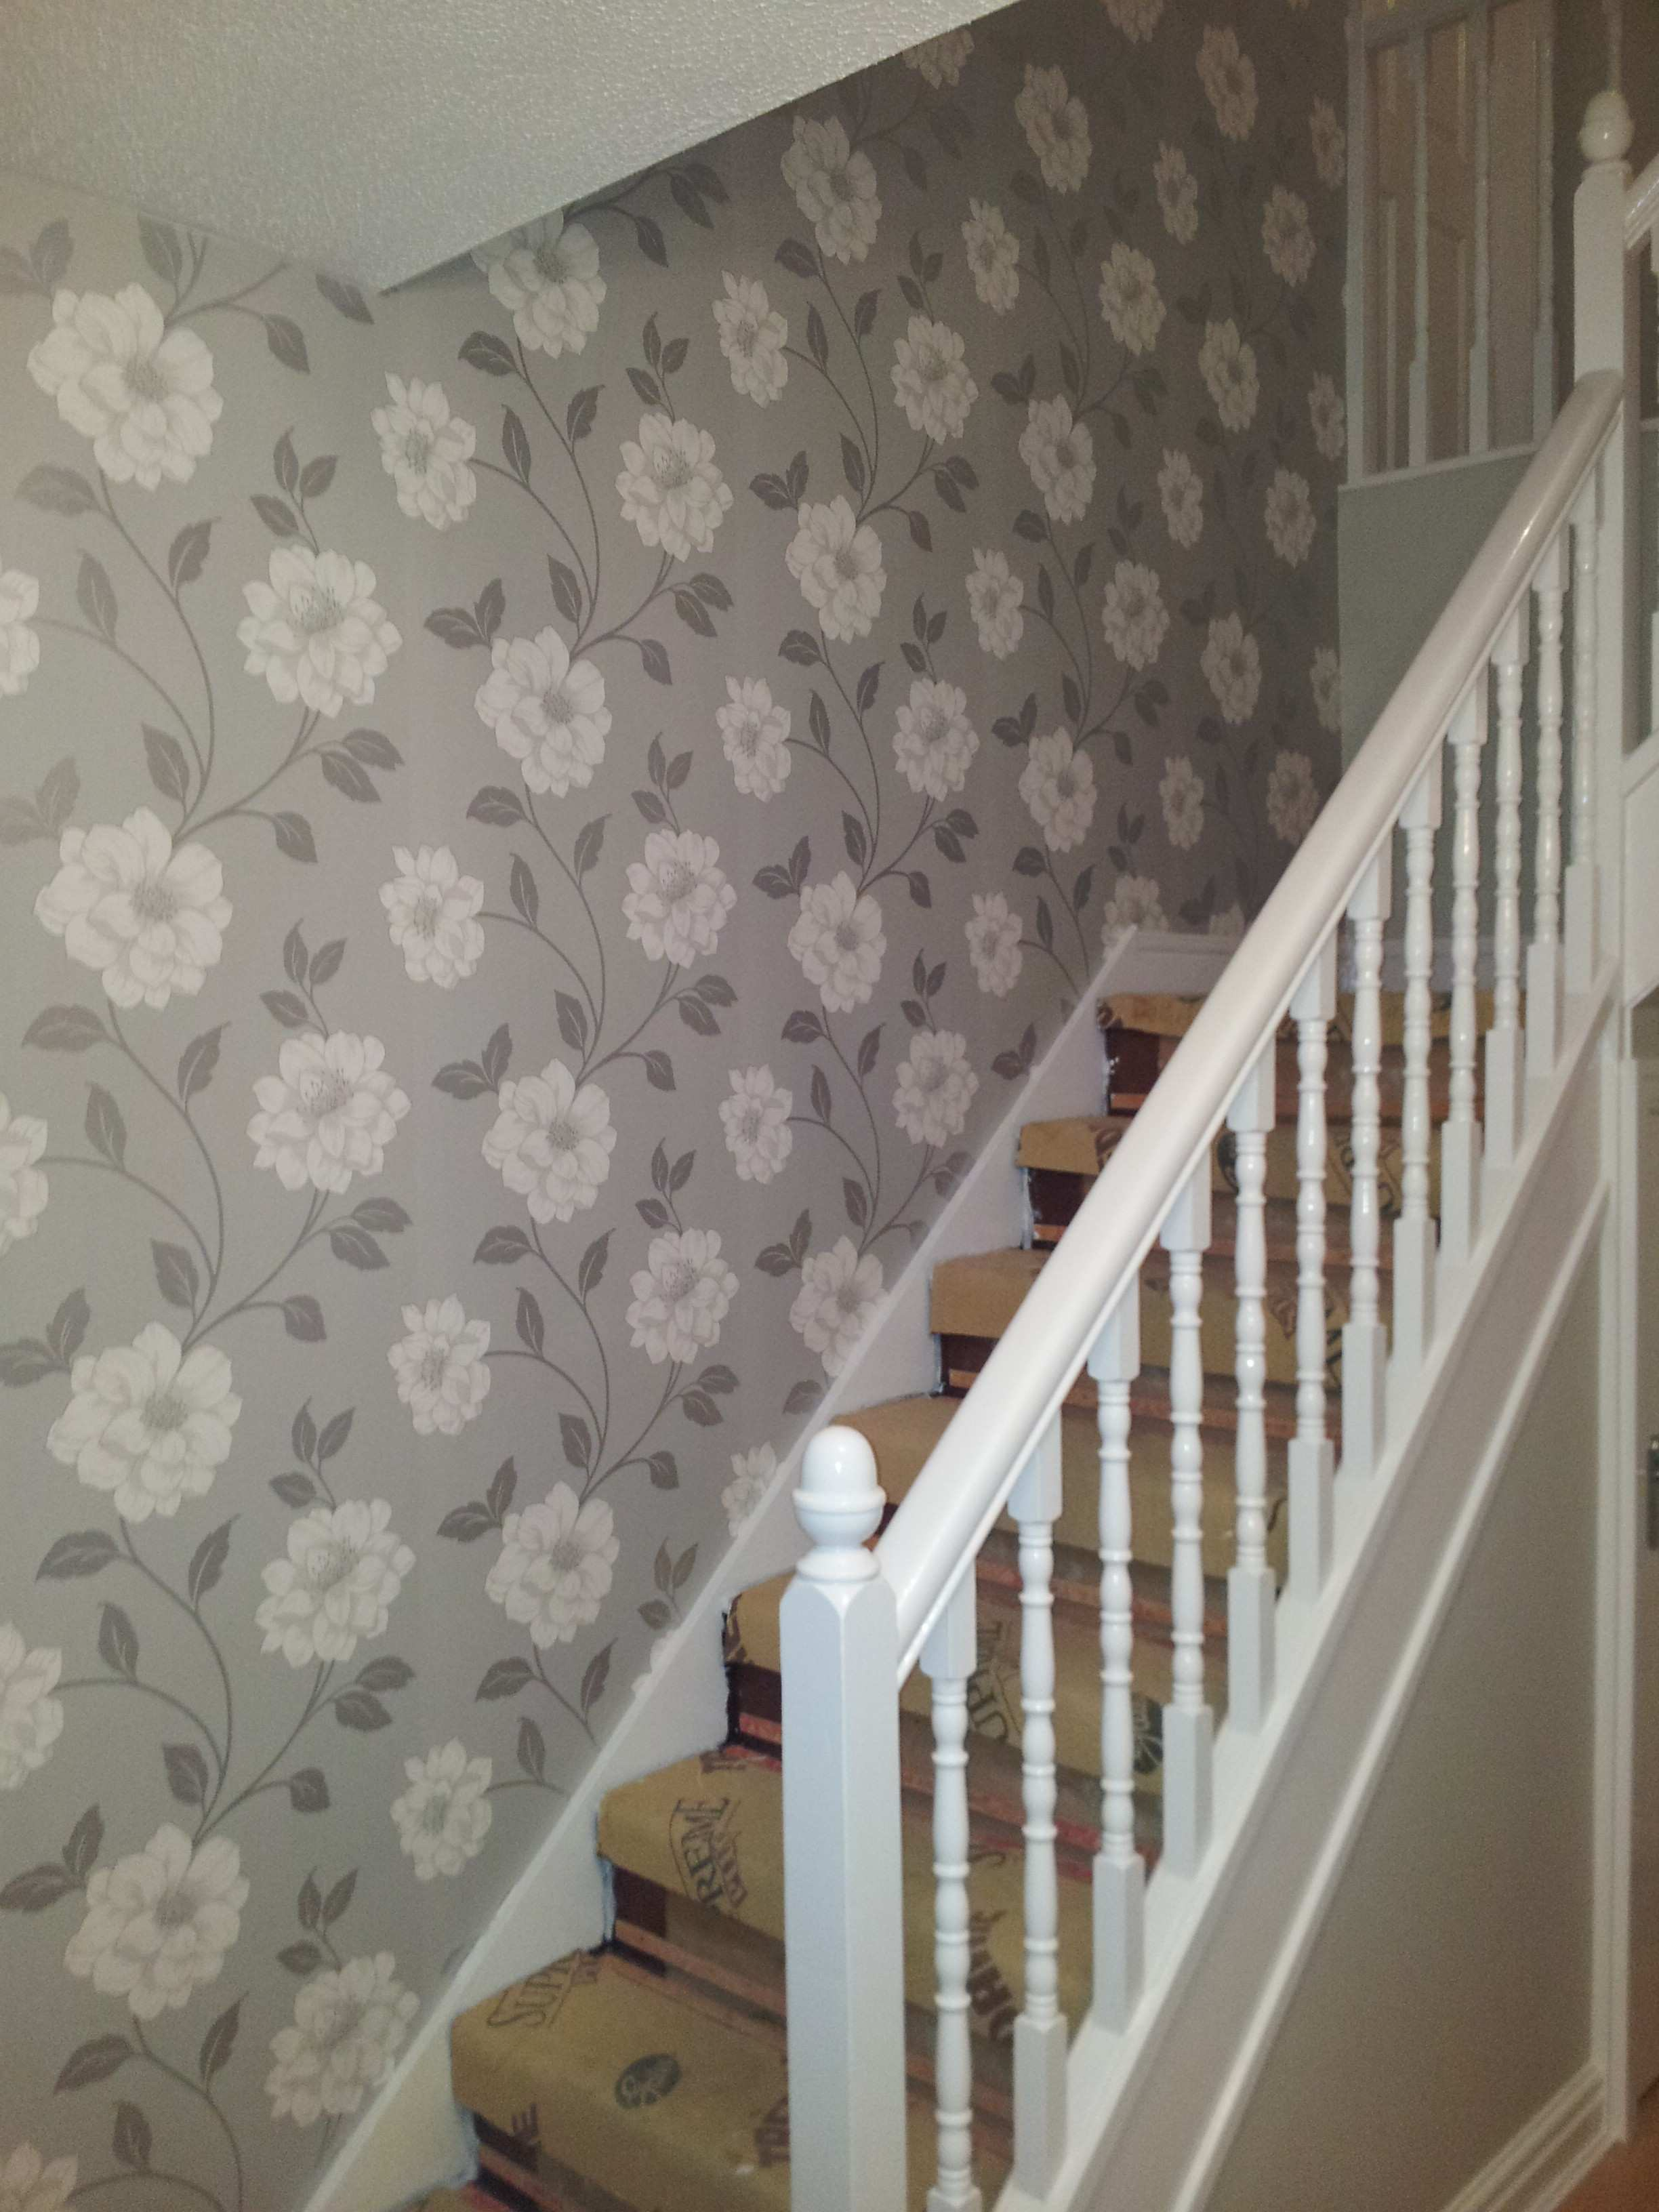 Pictures On Staircase Wall Lovely Appealing Wallpaper For Staircase Wall  Best Picture